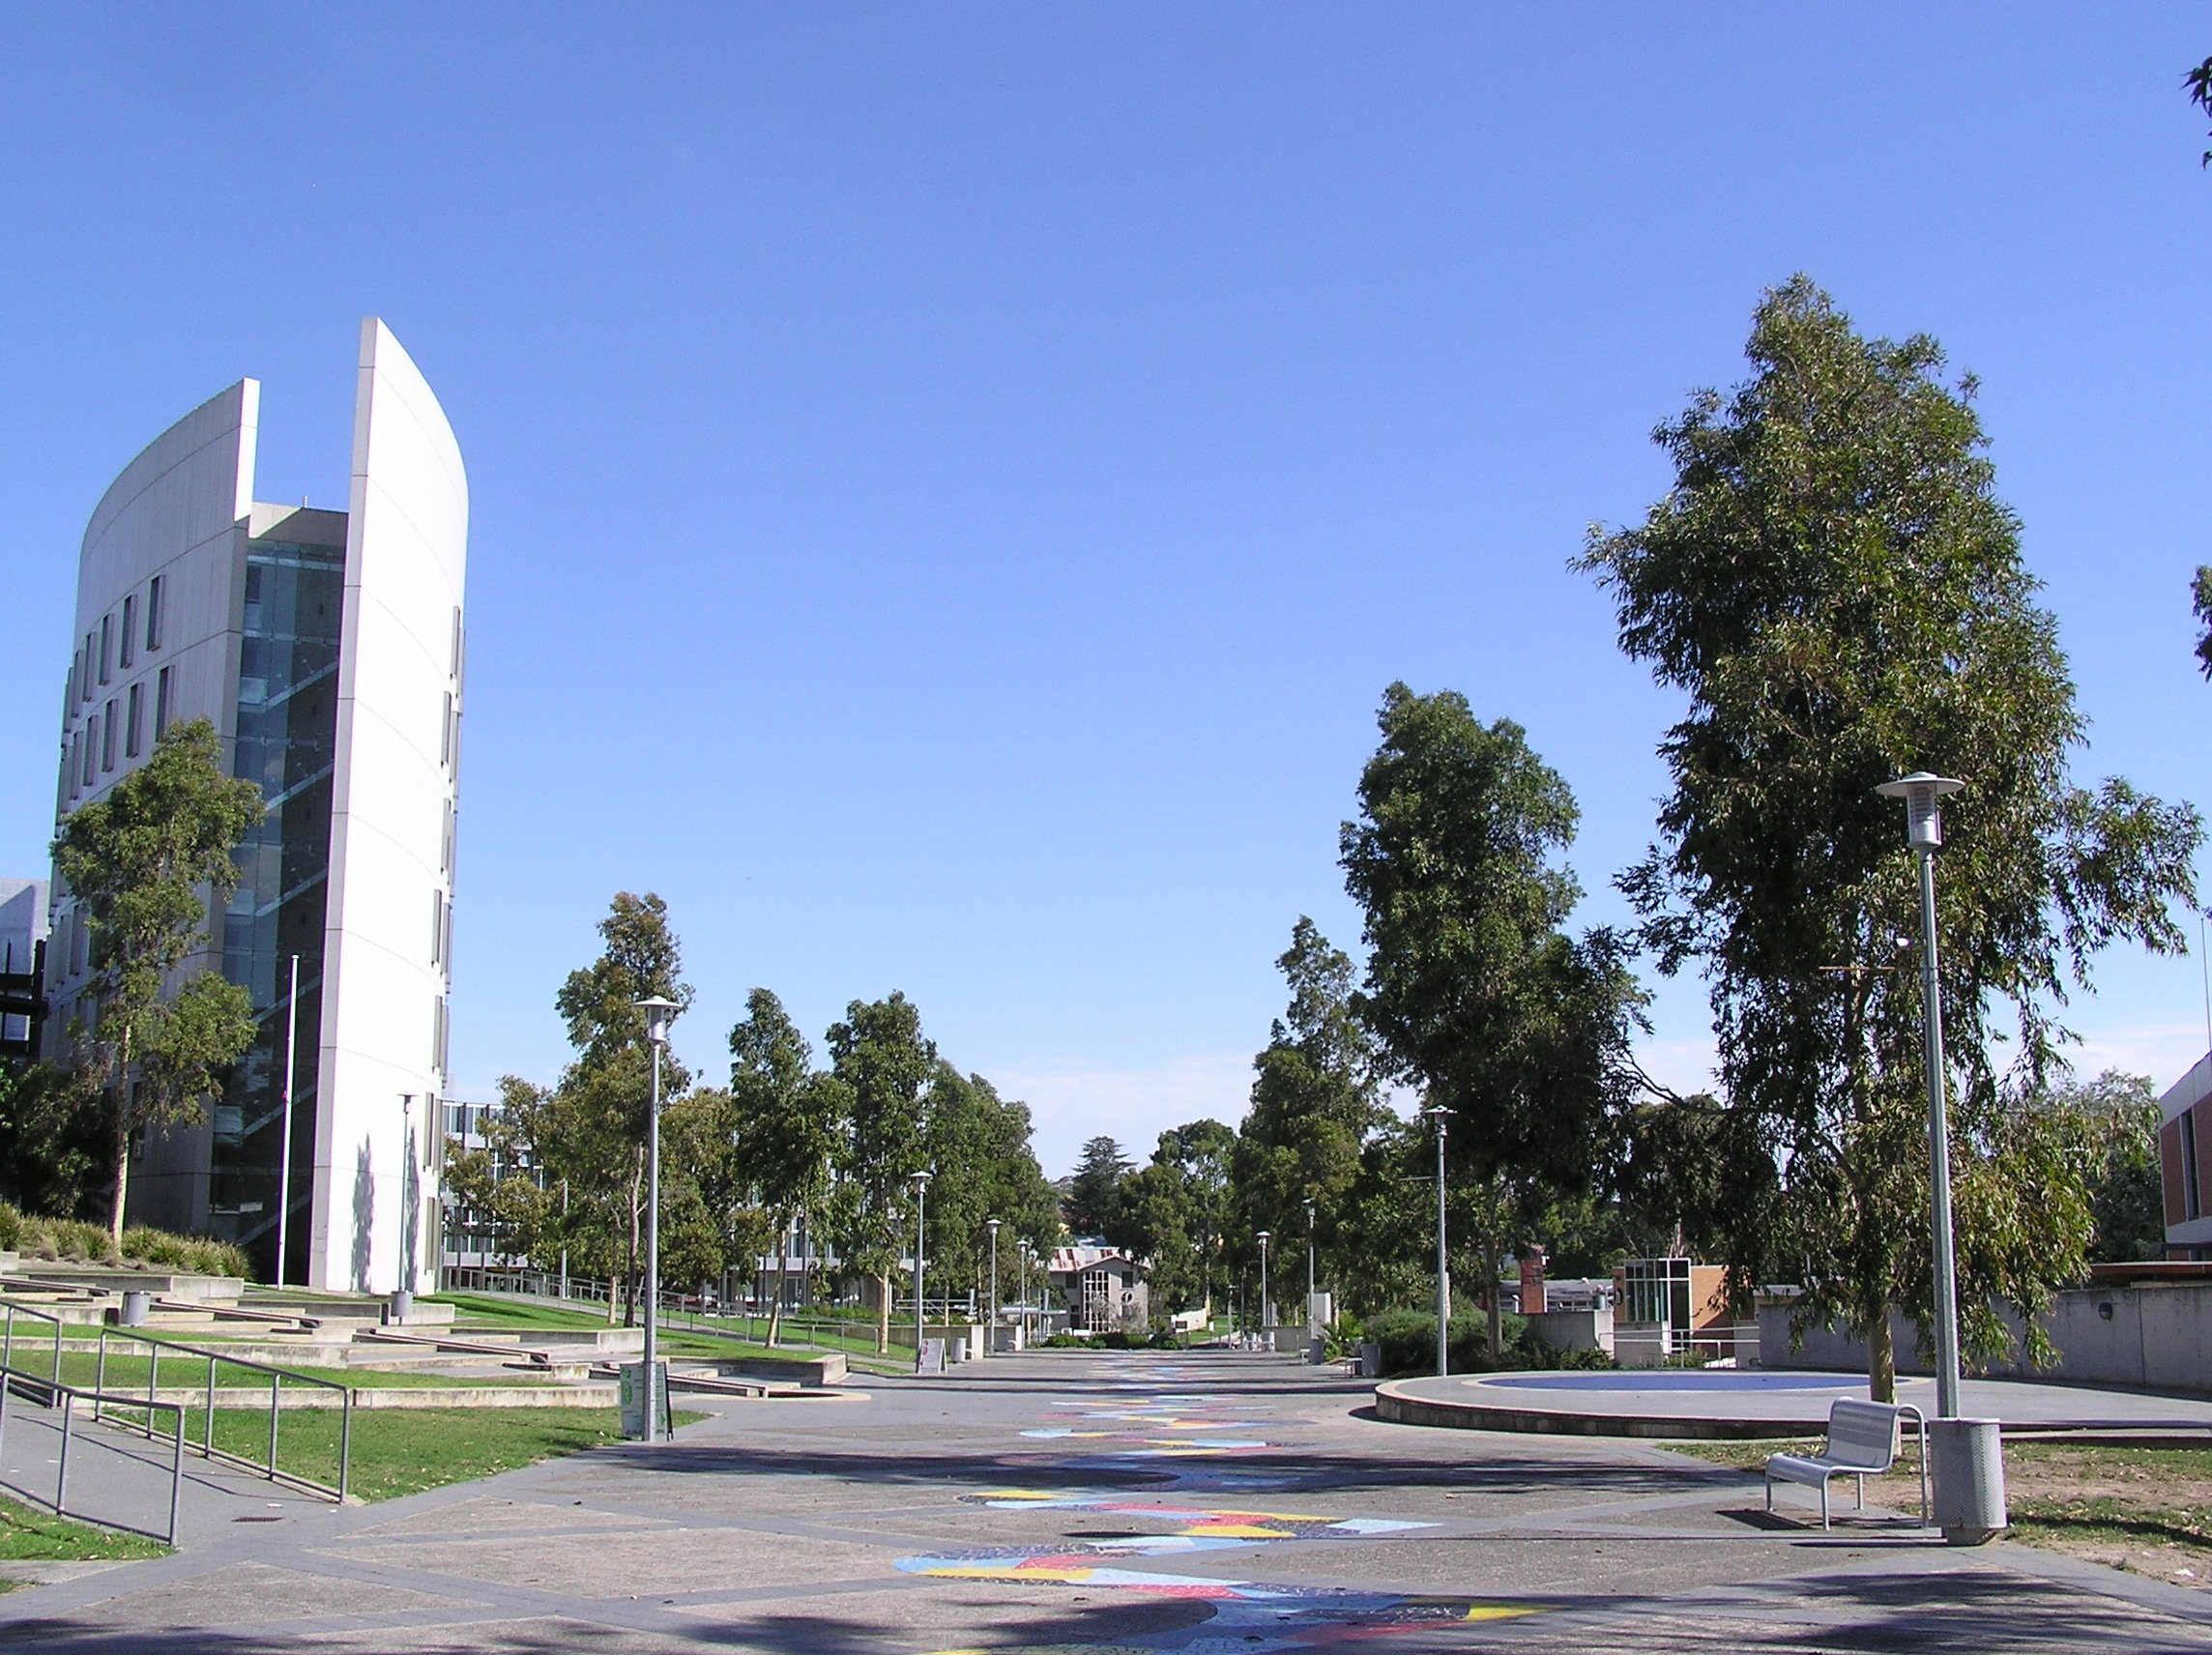 File:Deakin University Burwood Campus (Central).jpg - Wikipedia ...